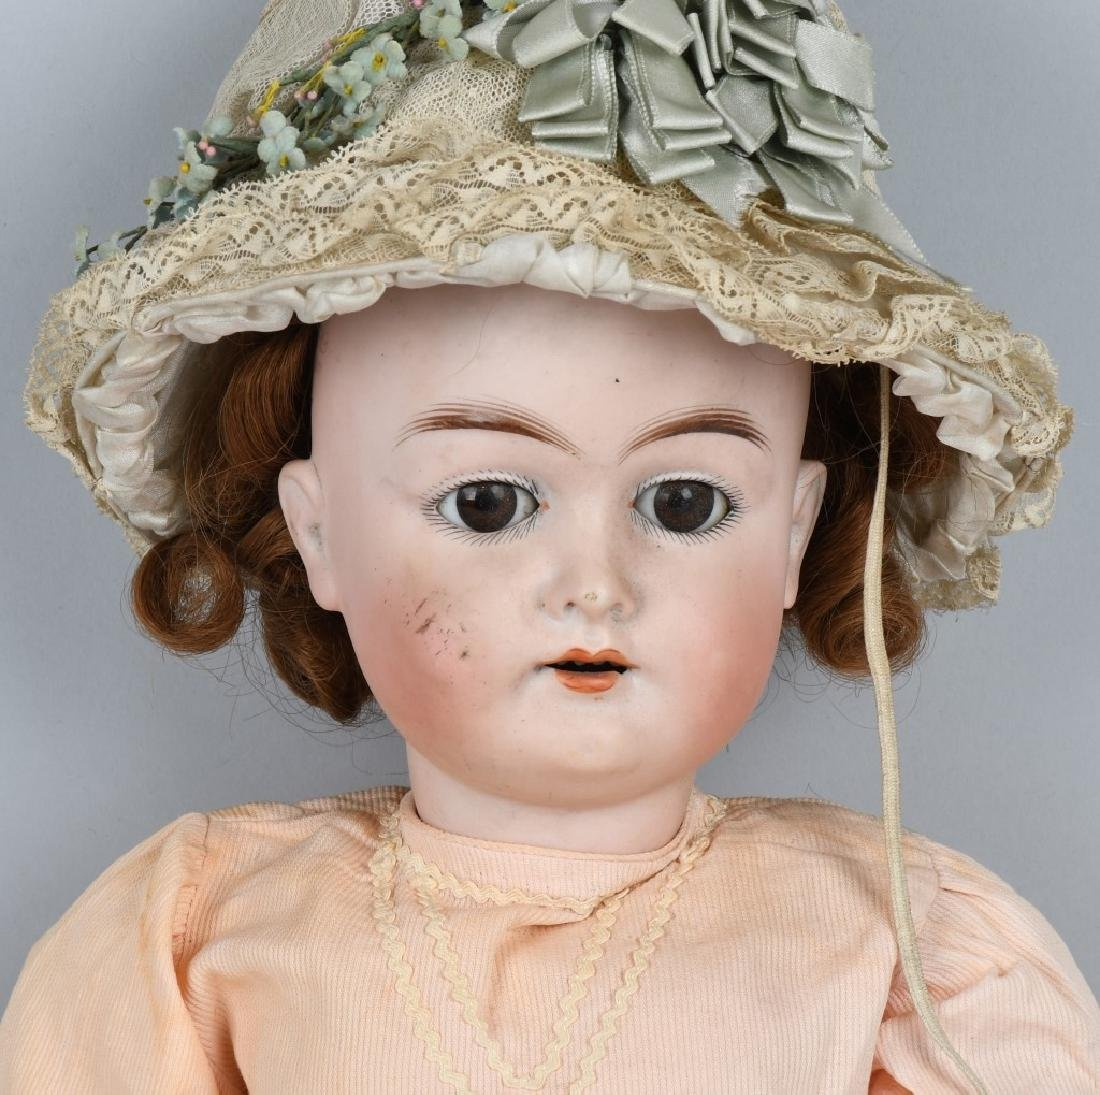 GERMAN KARL HARTMANN BISQUE DOLL - 2